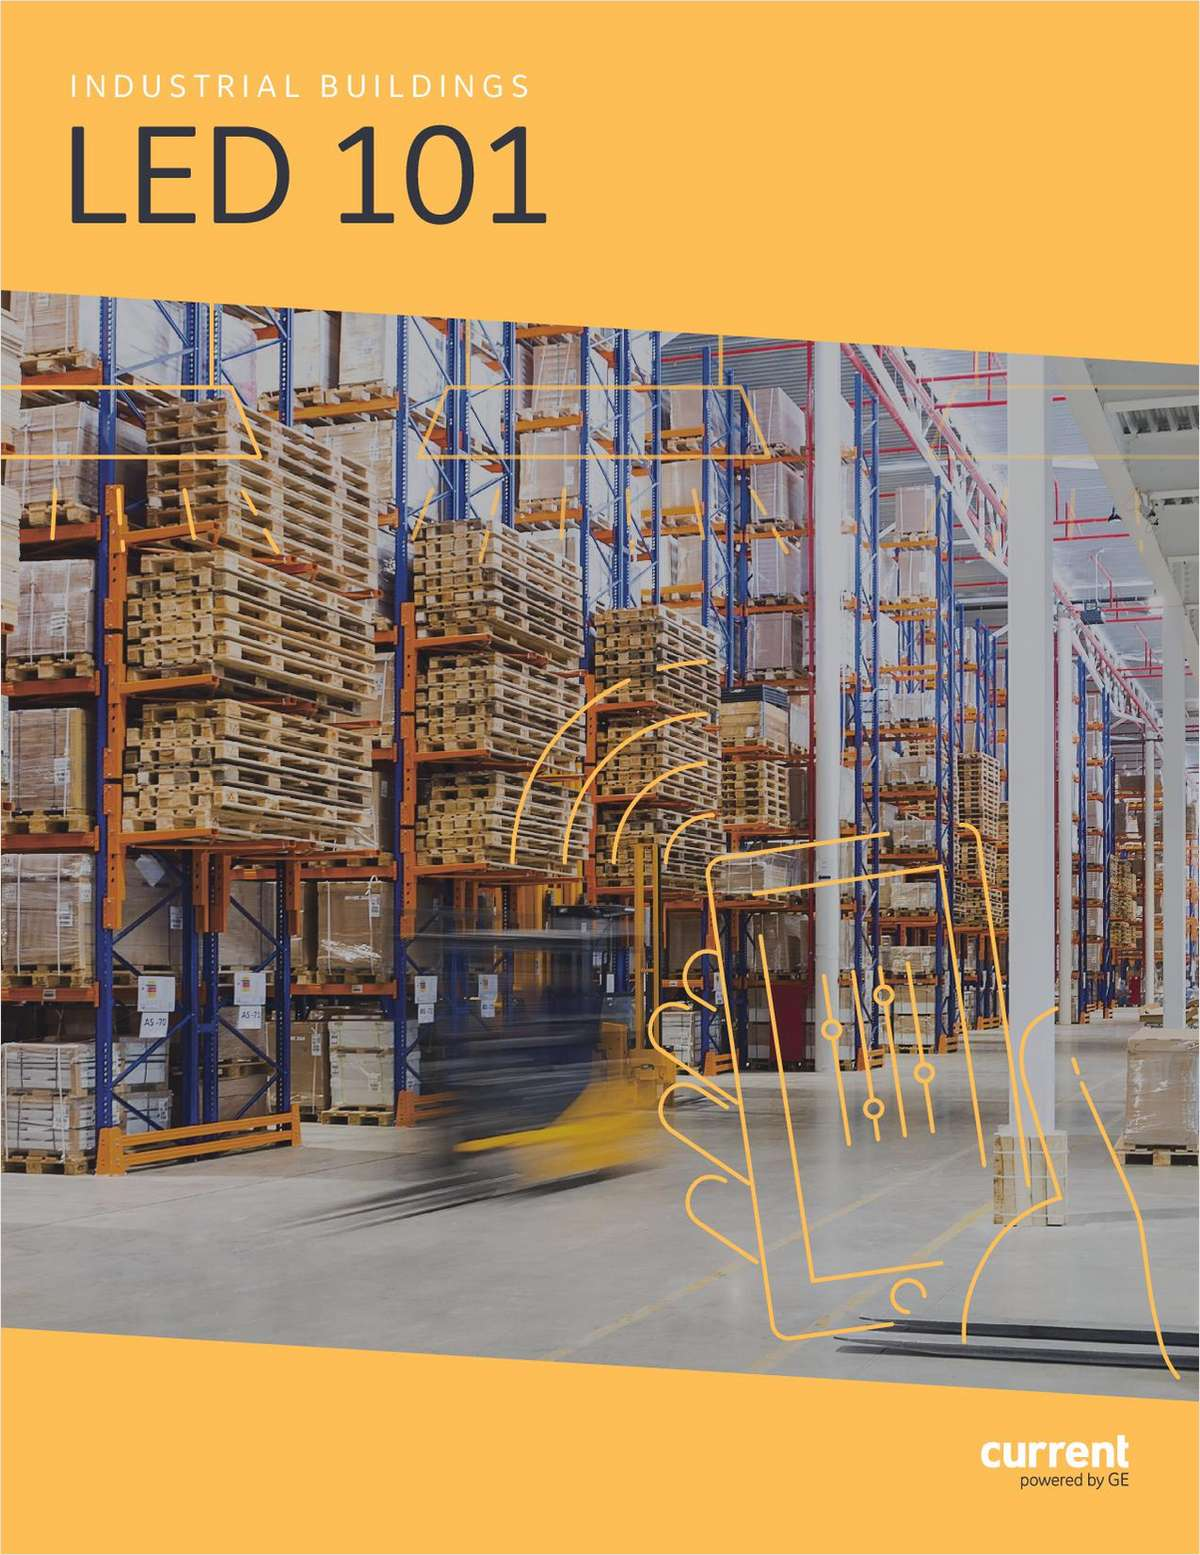 LED 101 for Industrial Buildings, Free Current, powered by